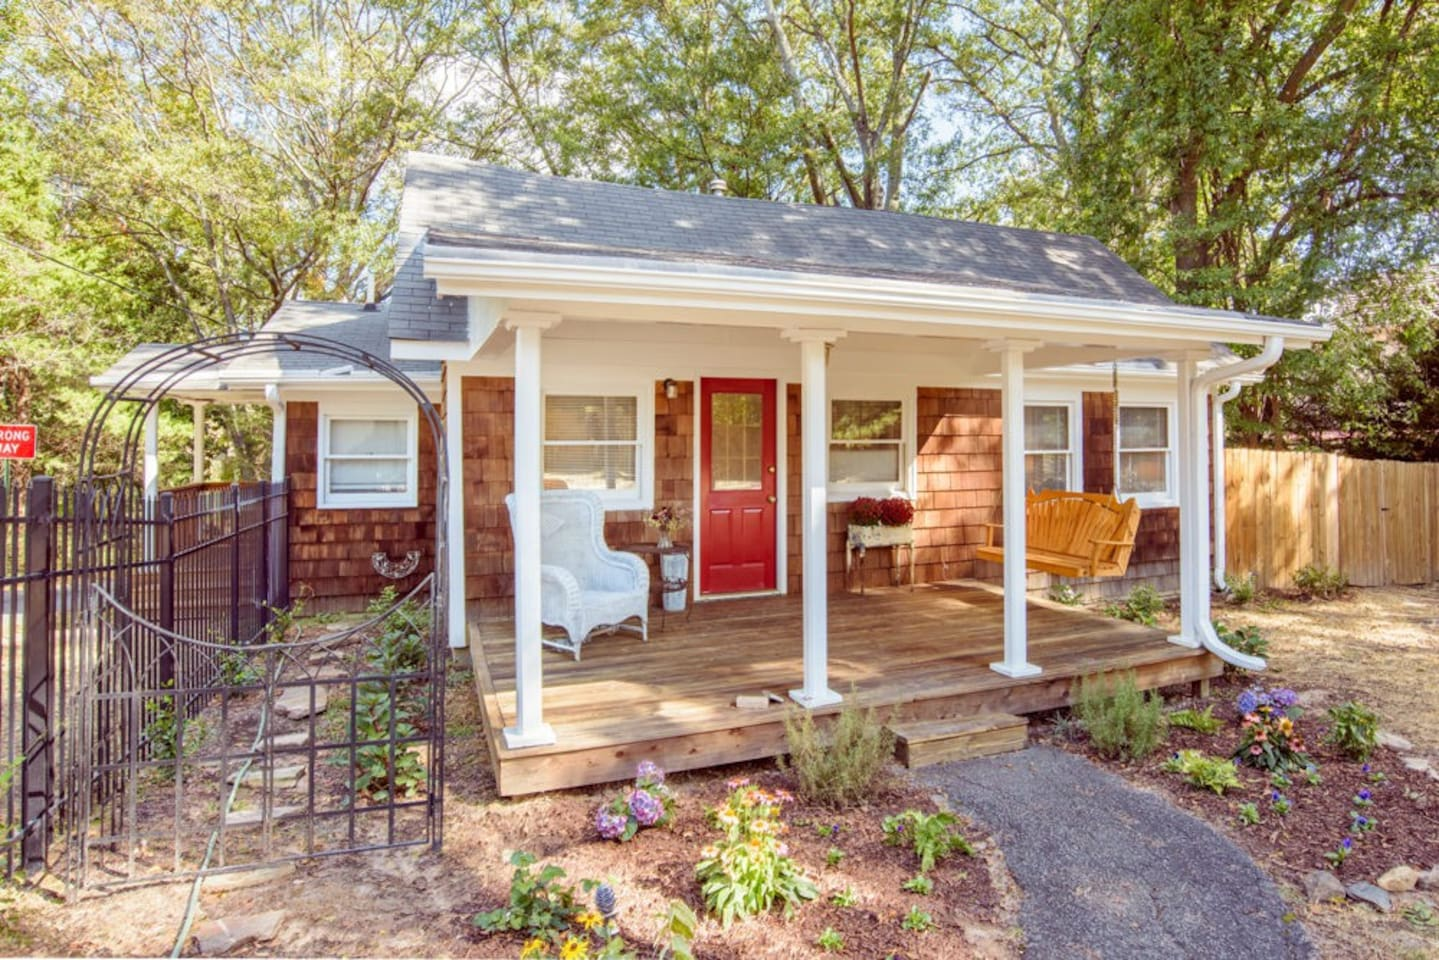 COOKS COTTAGE -  BUILT IN 1902 -  THIS RENOVATED HISTORIC COTTAGE IS LOCATED WITHIN EASY WALKING DISTANCE TO DOWNTOWN HISTORIC NORCROSS.